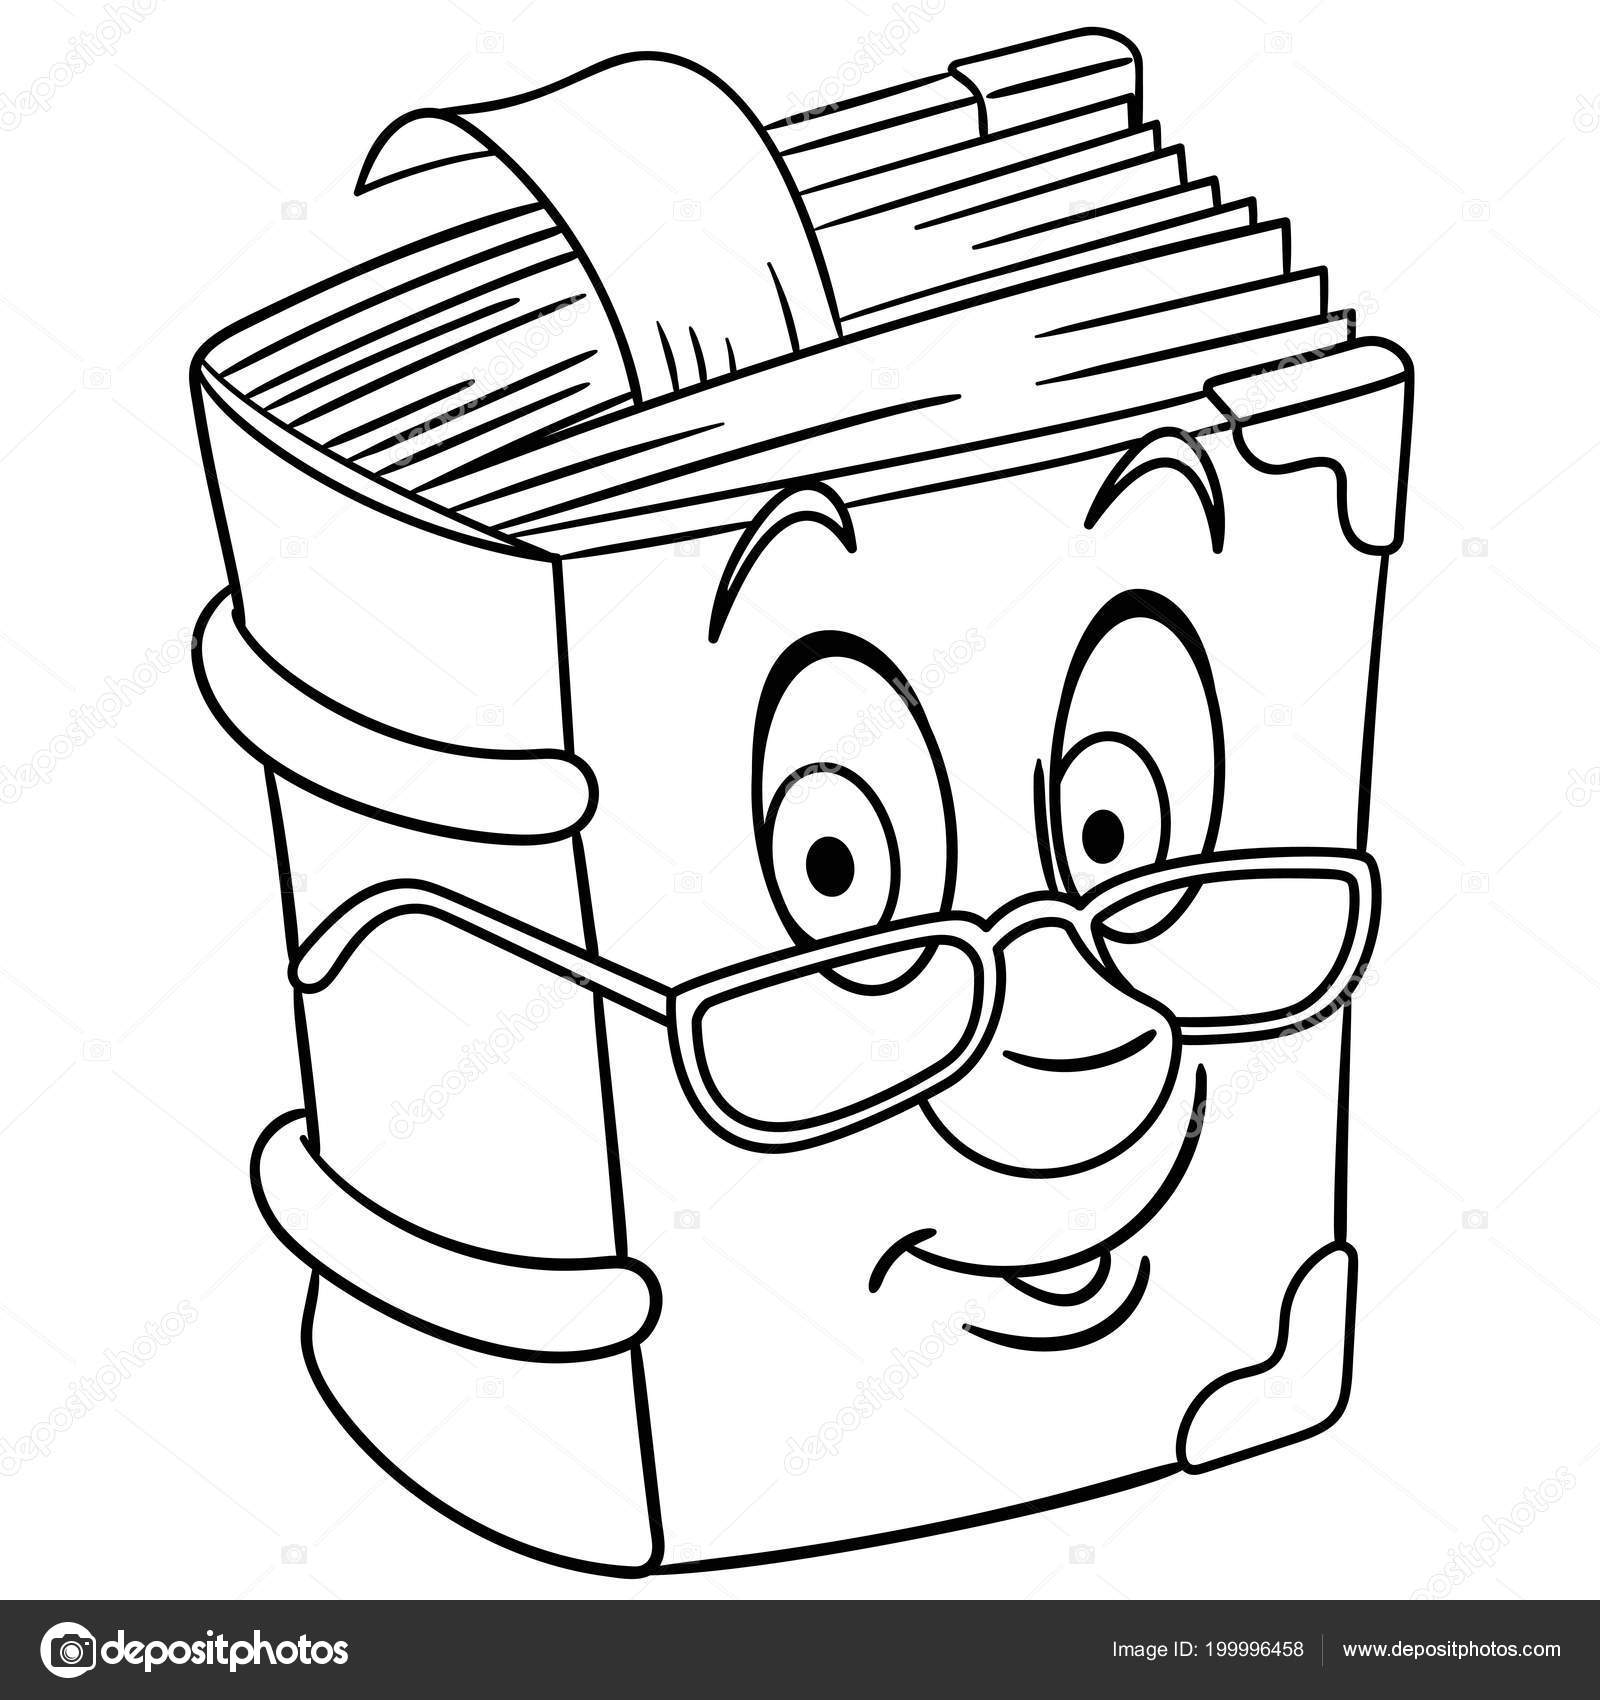 vintage book textbook coloring page colouring picture